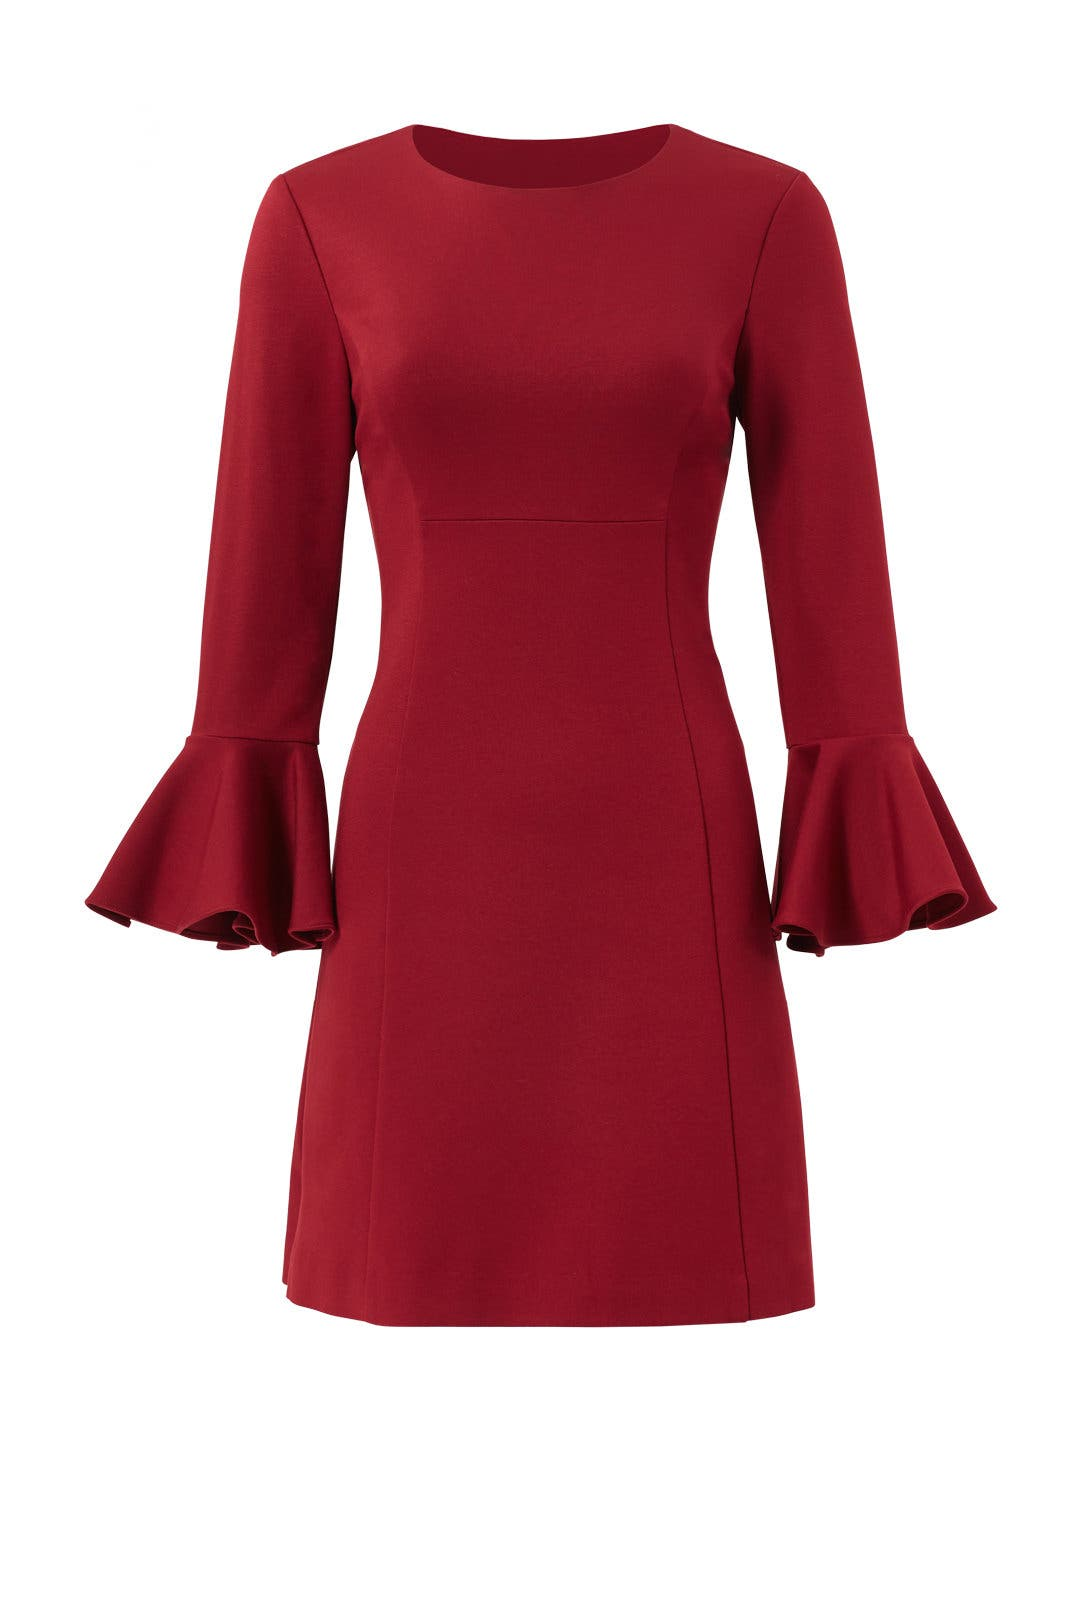 Red Panache Dress By Trina Turk For 45 Rent The Runway